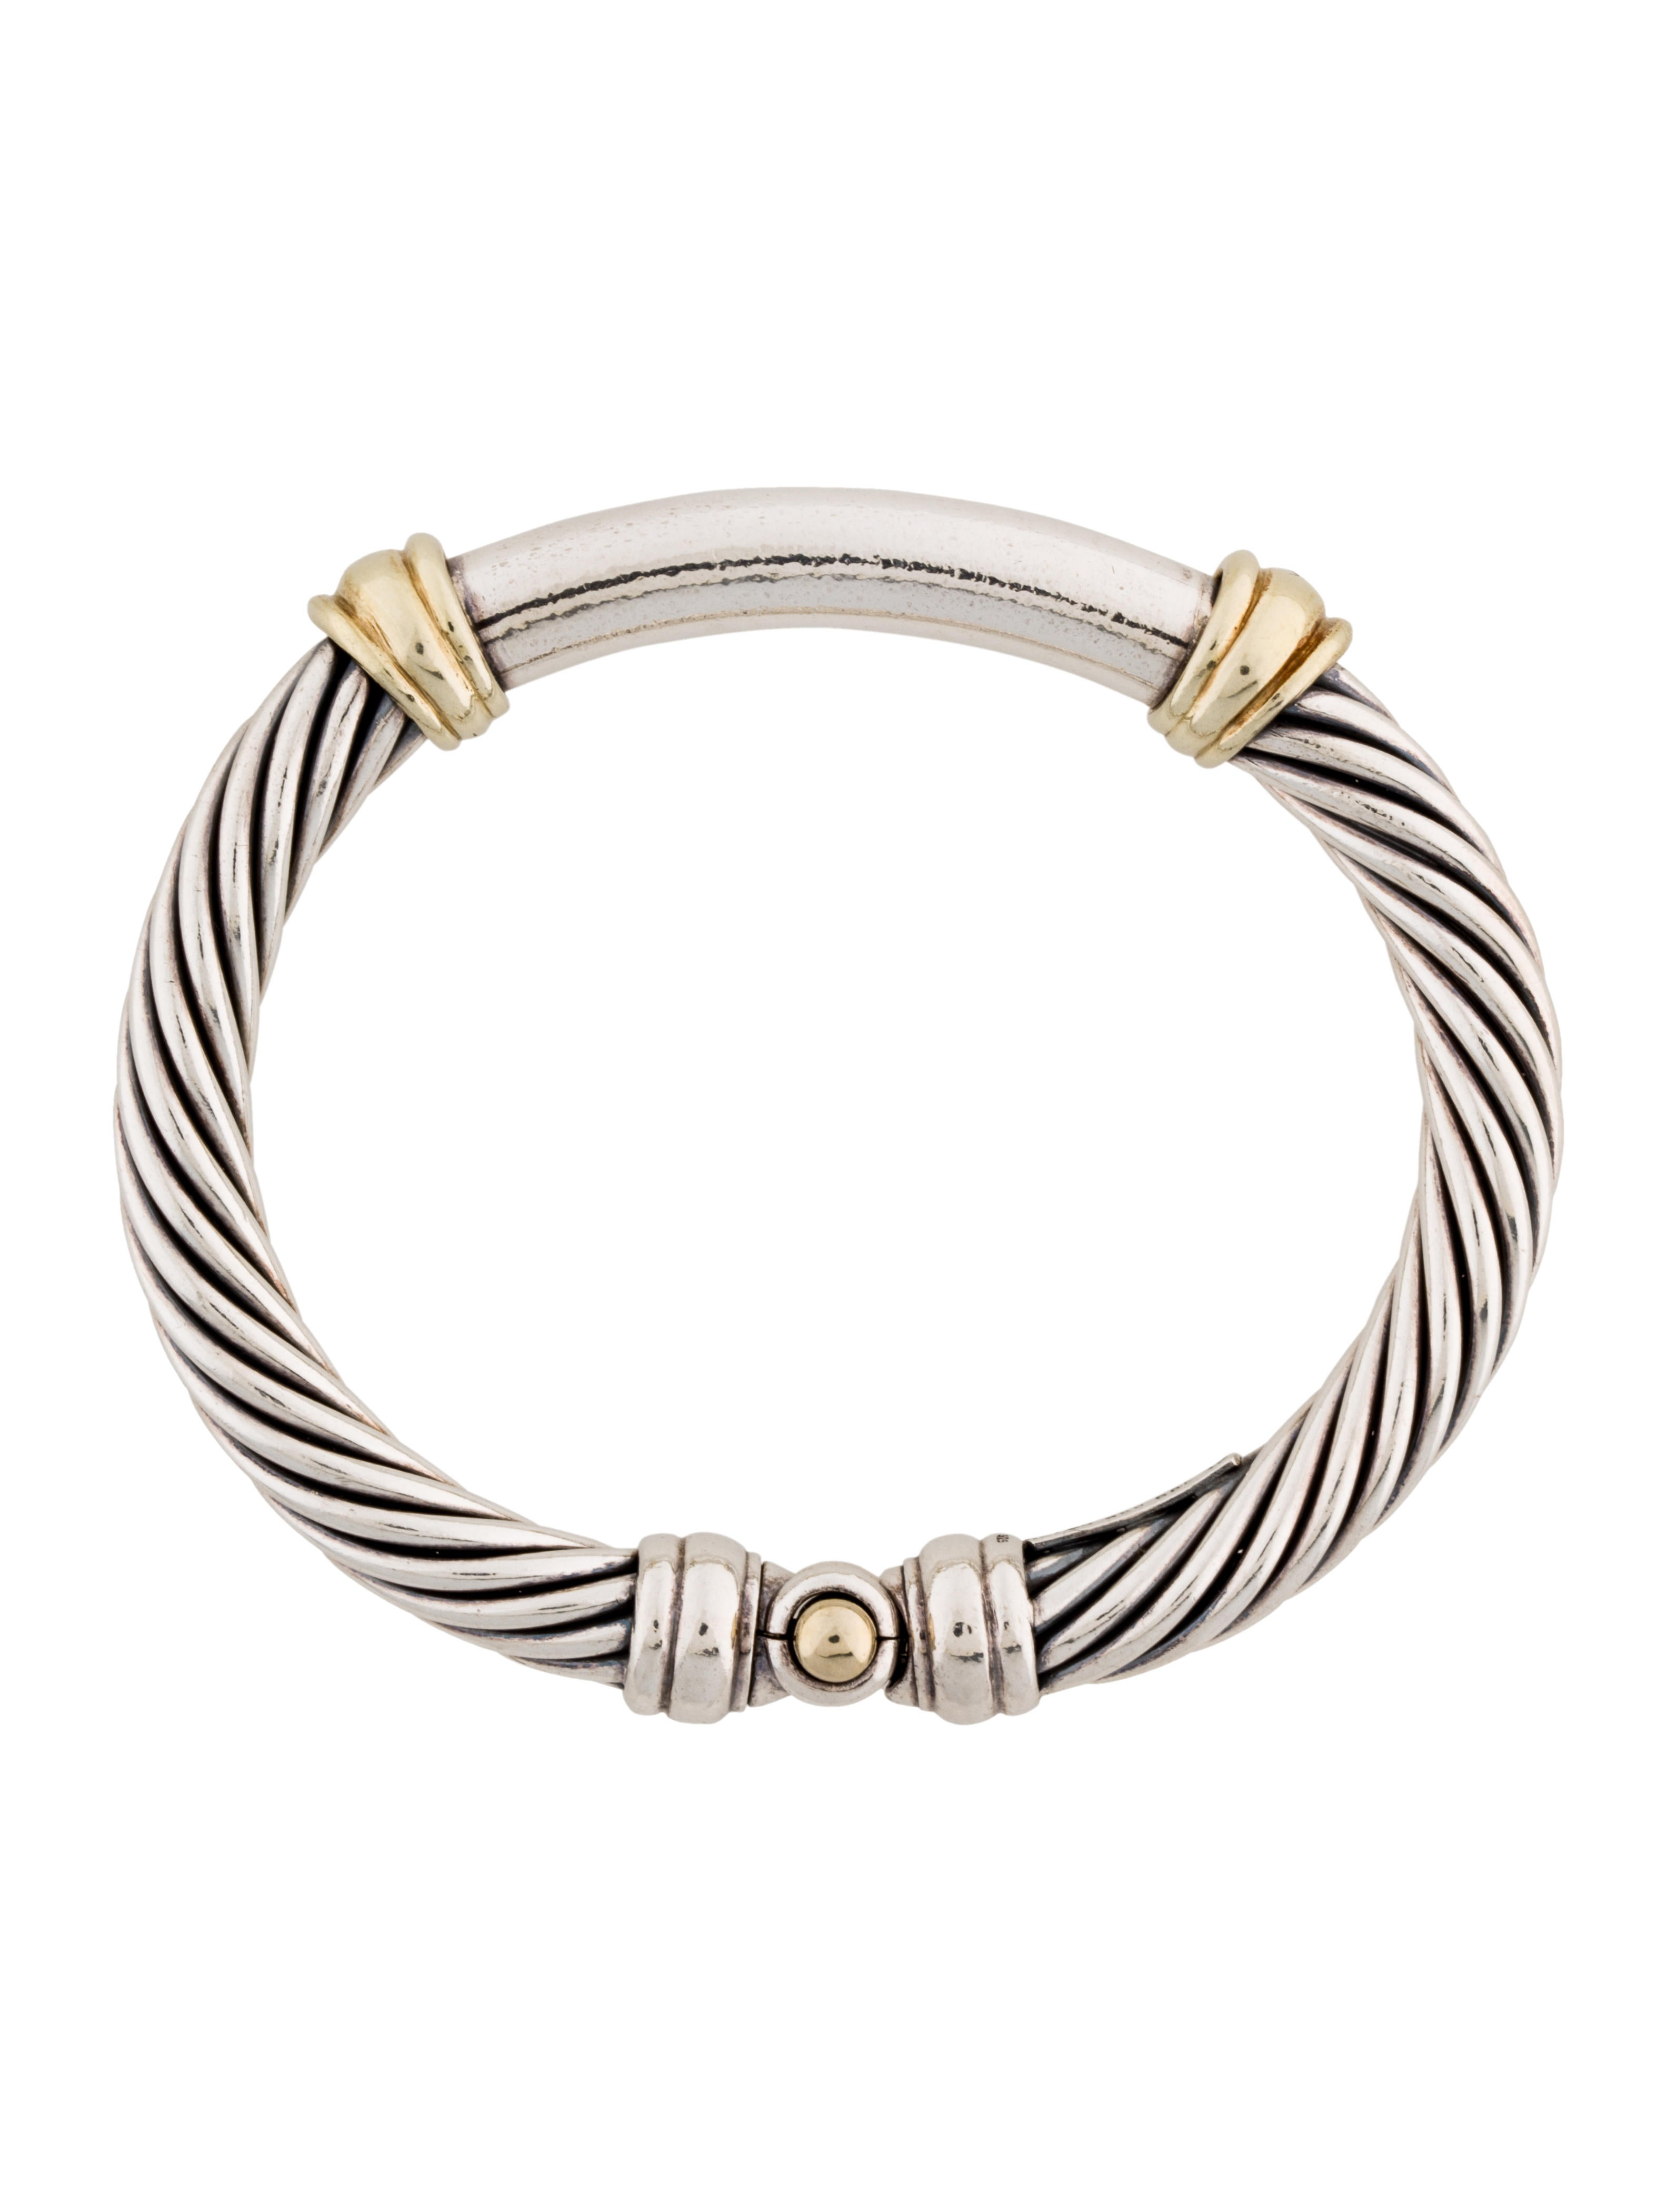 David yurman two tone metro cable bracelet bracelets for David yurman inspired bracelet cable